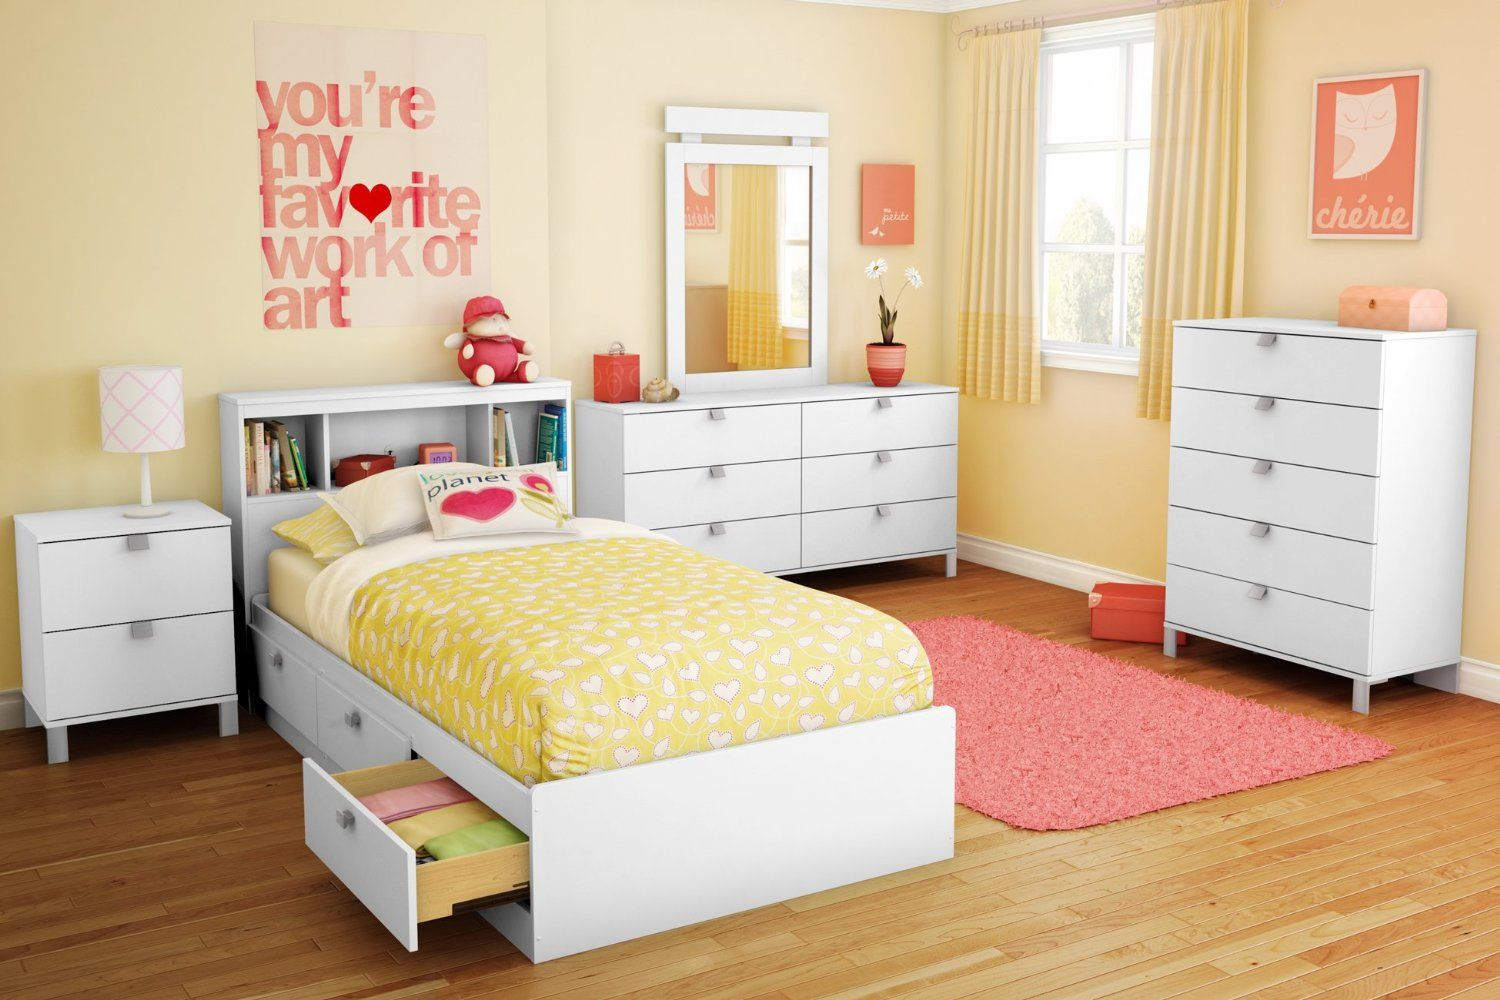 images about kids furniture pakistan on pinterest kid furniture karachi pakistan and commercial - Kids Furniture